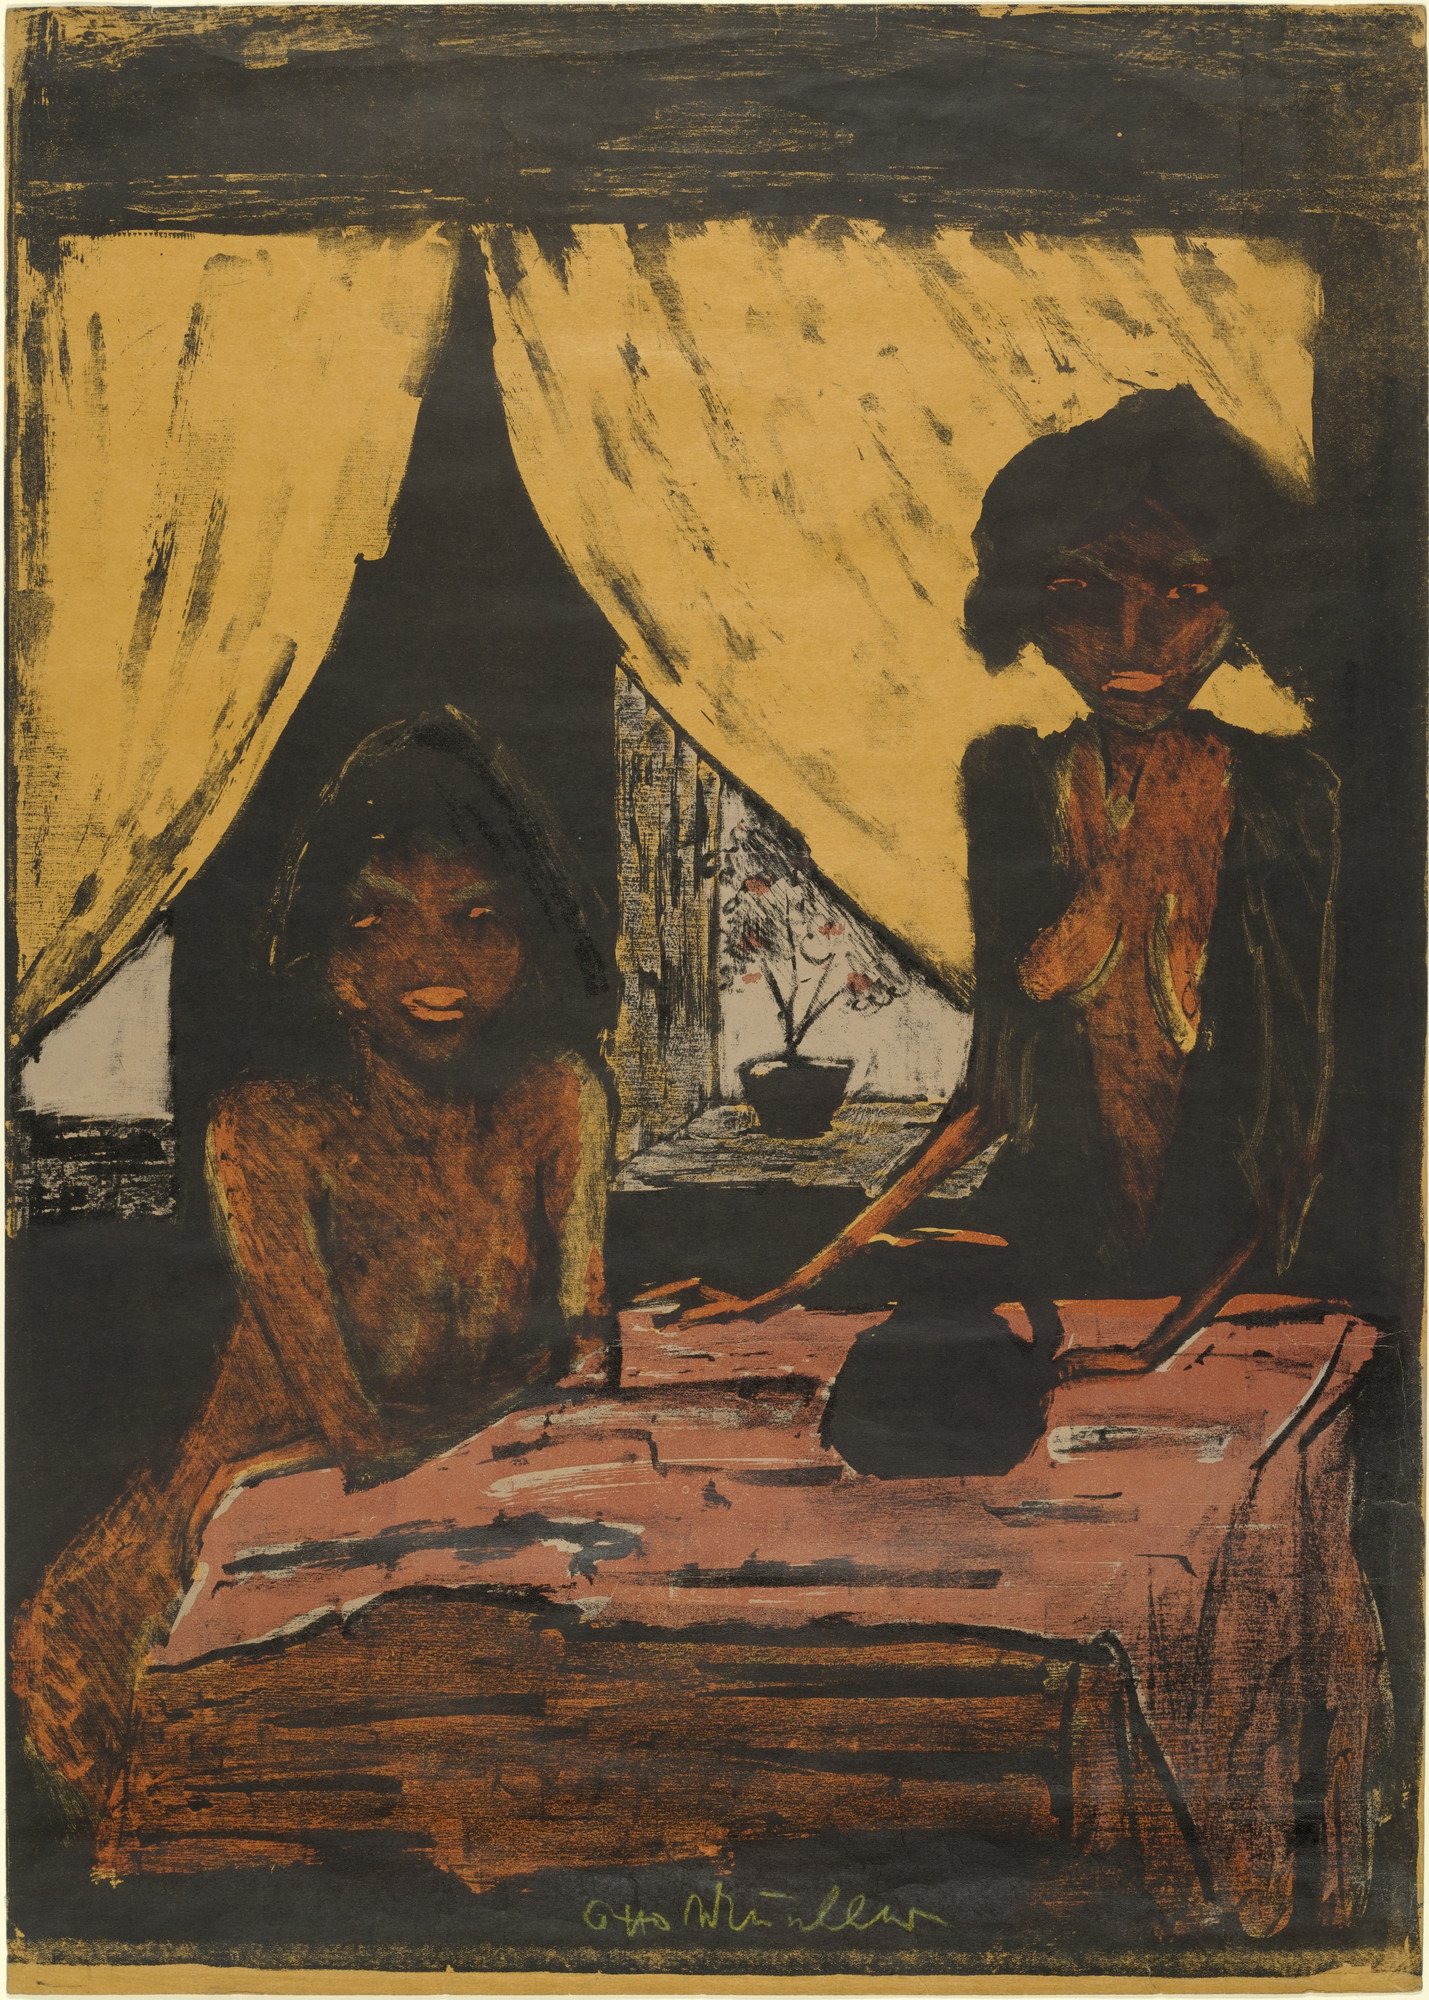 Otto Mueller. Two Gypsy Girls in Living Room (Zwei Zigeunermädchen im Wohnraum) from the portfolio Gypsies (Zigeuner). (1926-27, published 1927)